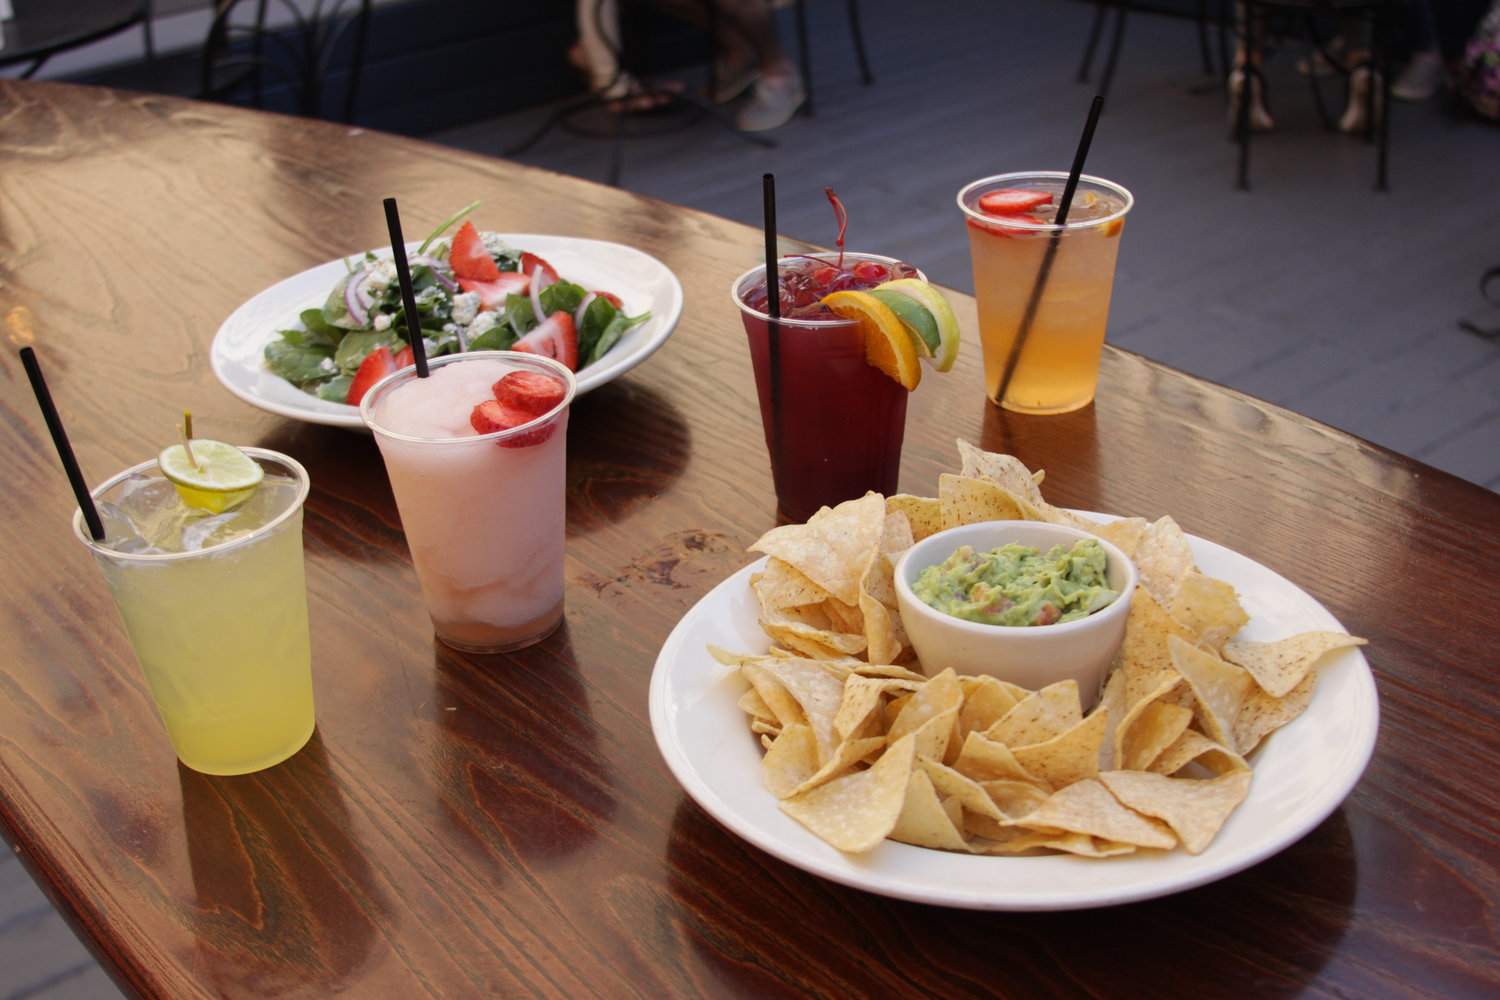 A plate of chips with guacamole sits on a table with four drinks and a salad